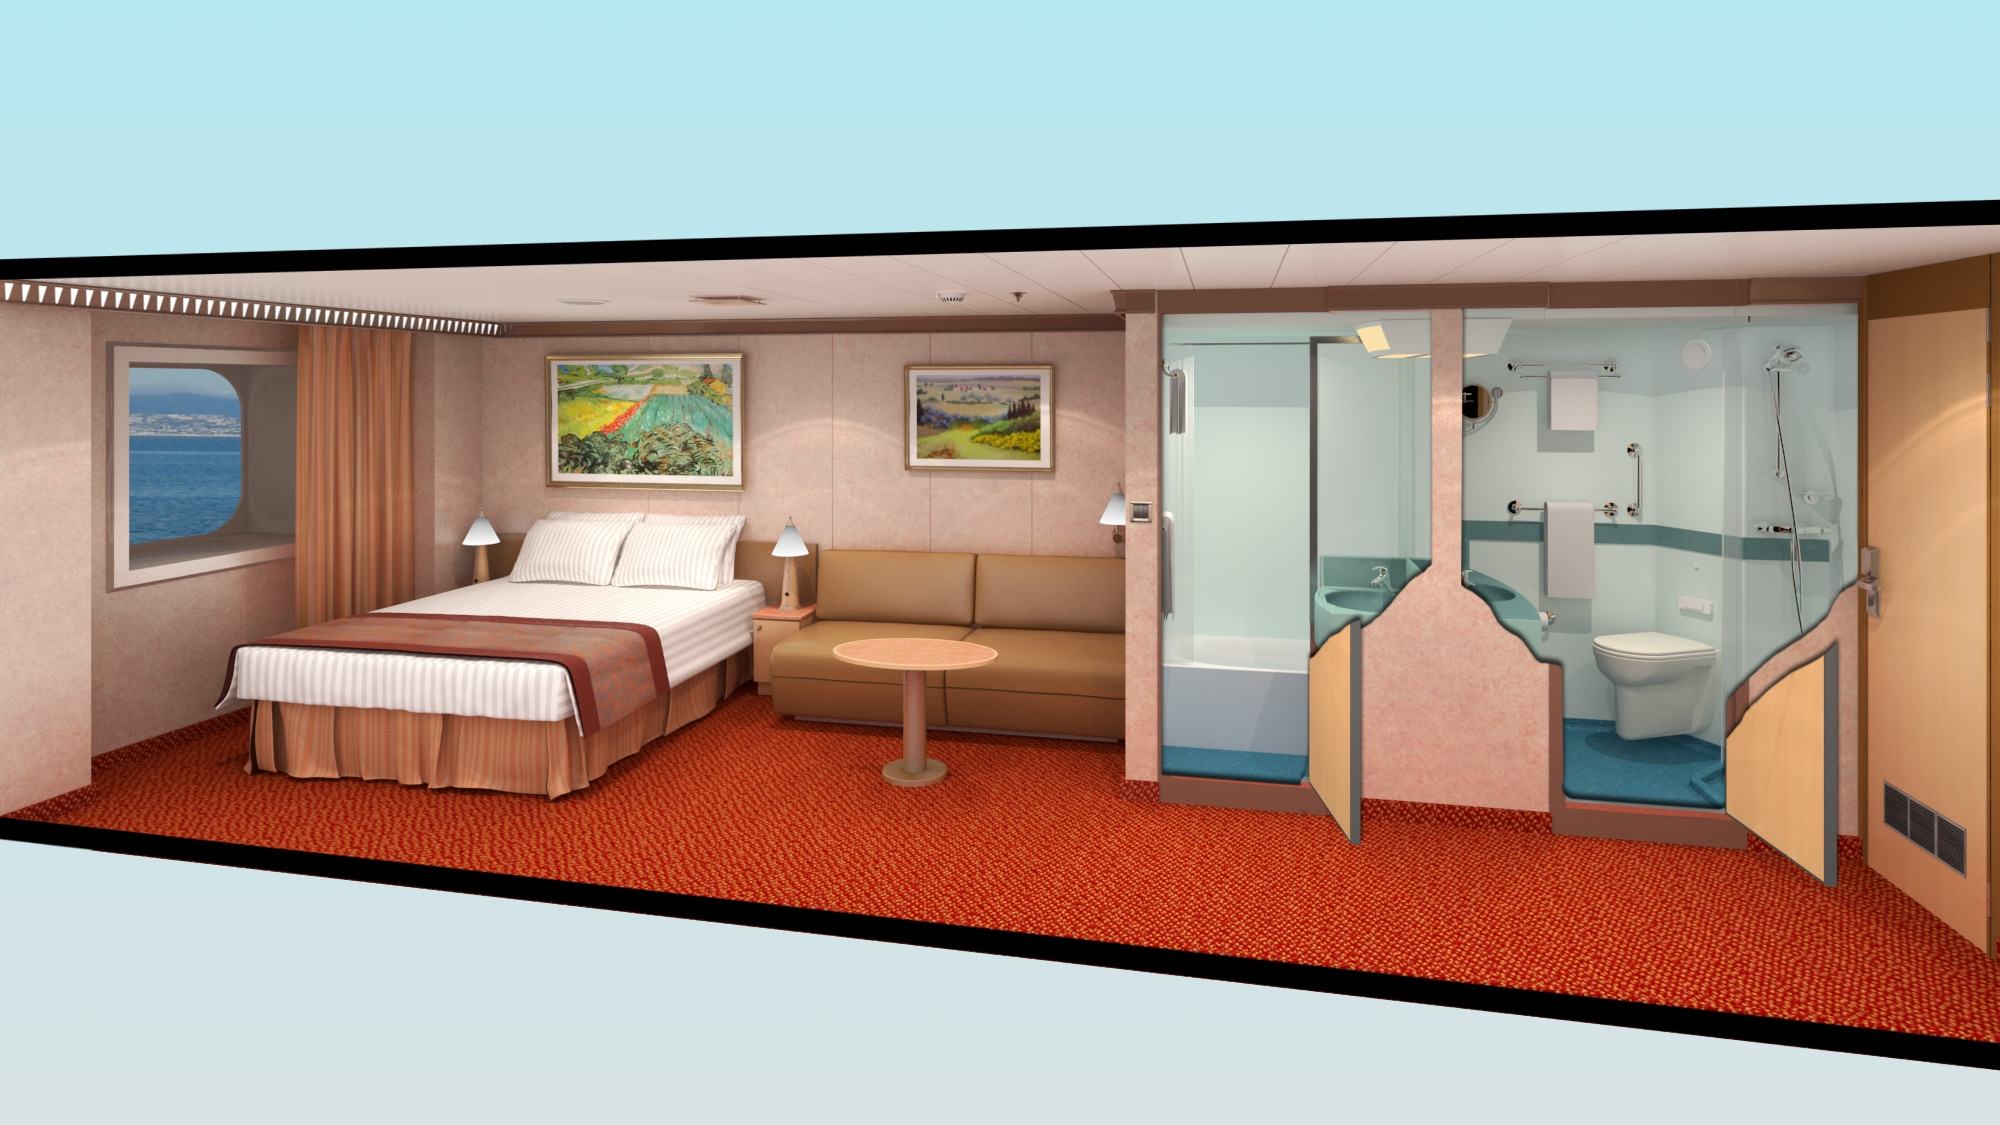 Carnival Conquest Room Layout Book Covers